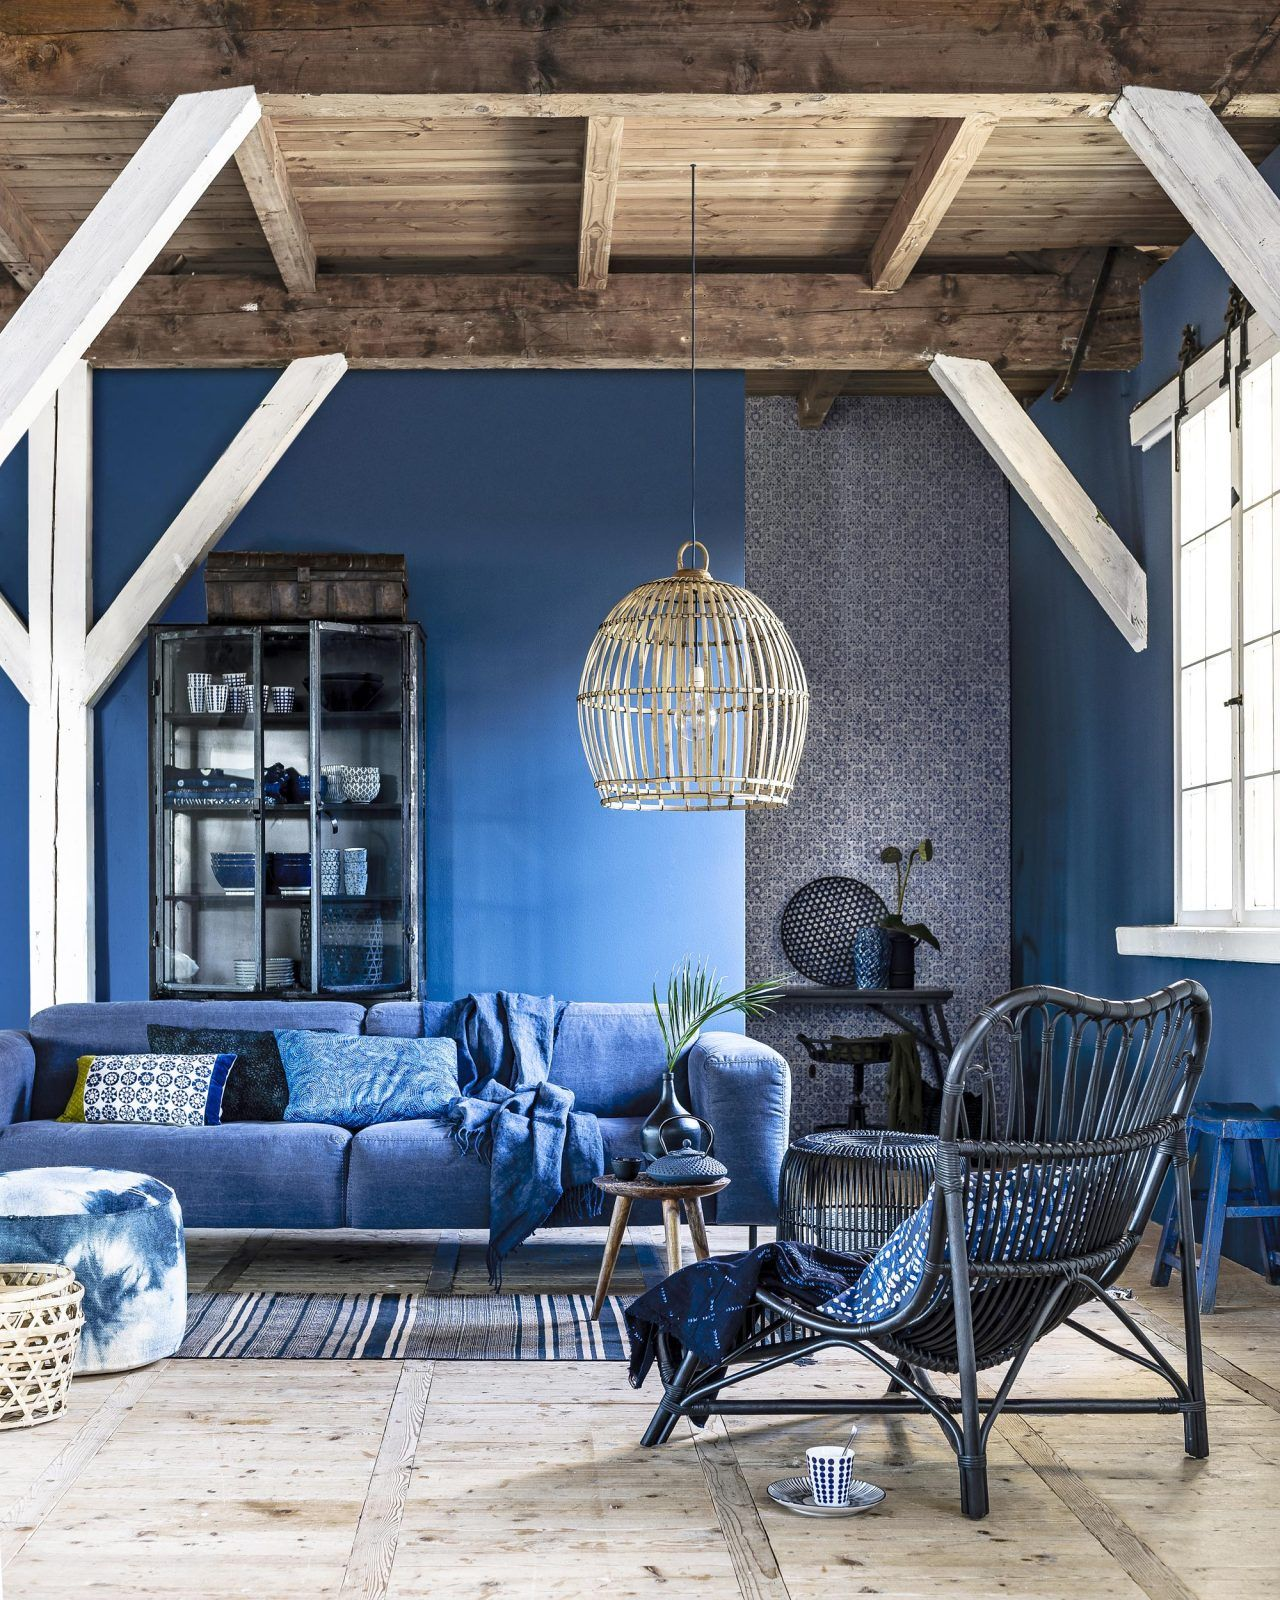 The Color Trends For 2020 Are Inspired By Nature The Nordroom In